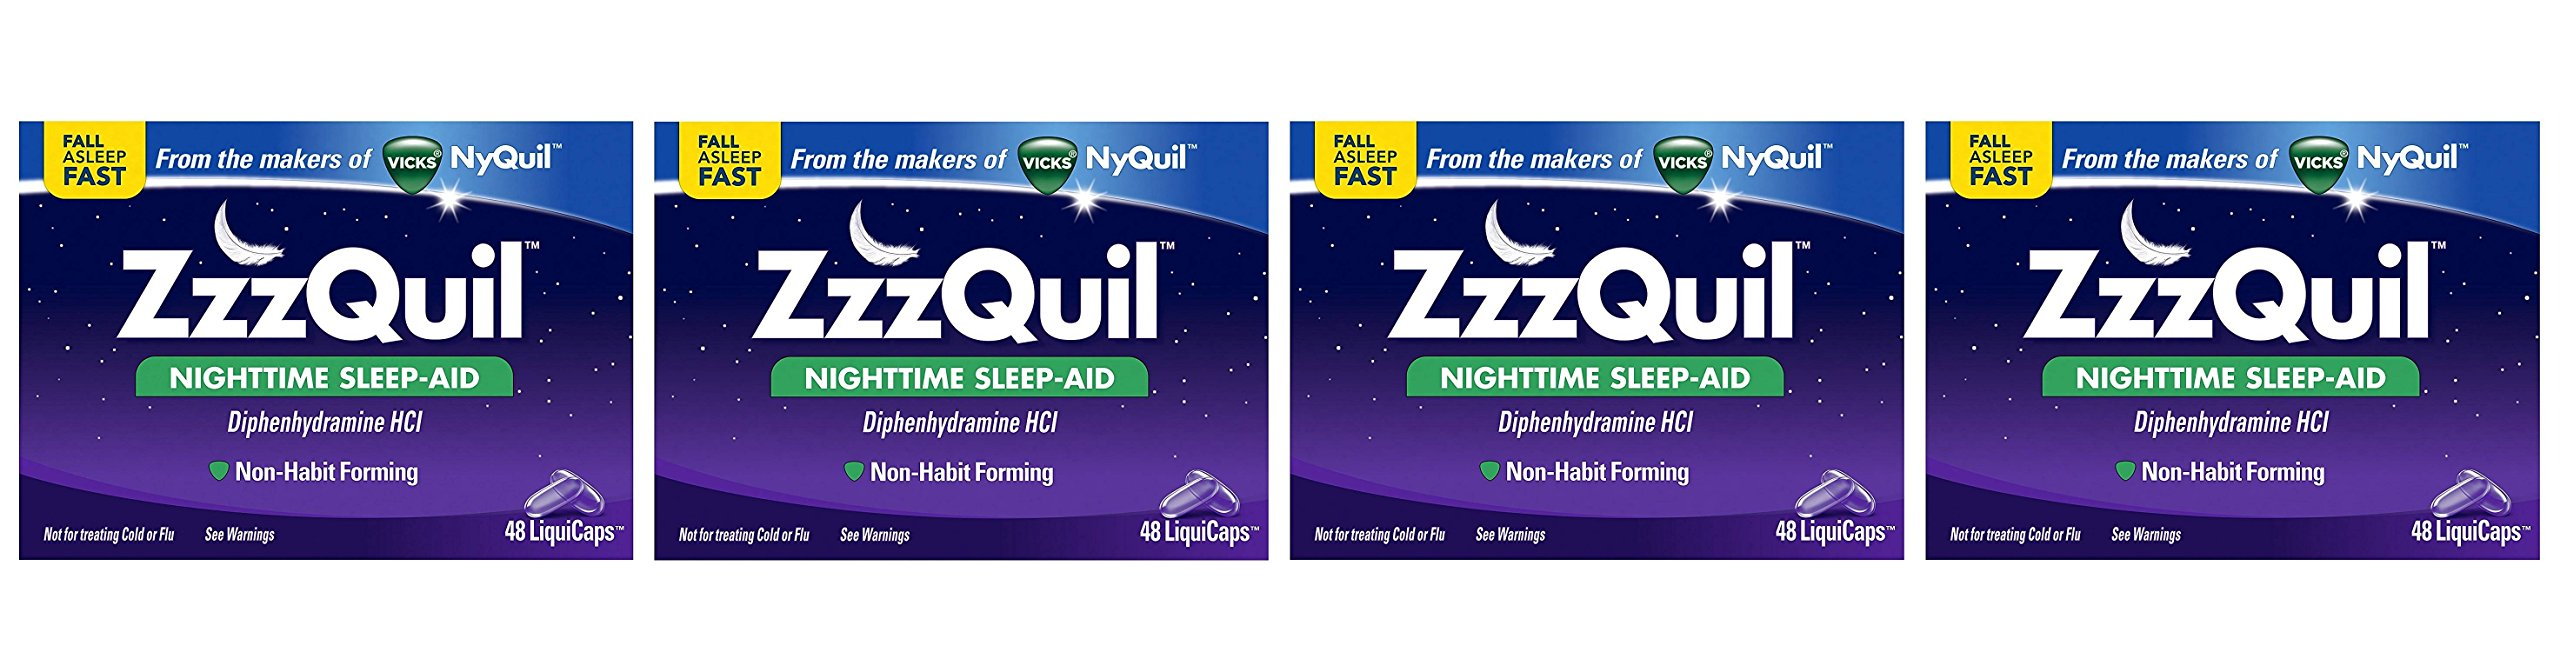 ZzzQuil Nighttime pVxYWO Sleep Aid, 48 LiquiCaps (Pack of 4) by ZzzQuil (Image #1)